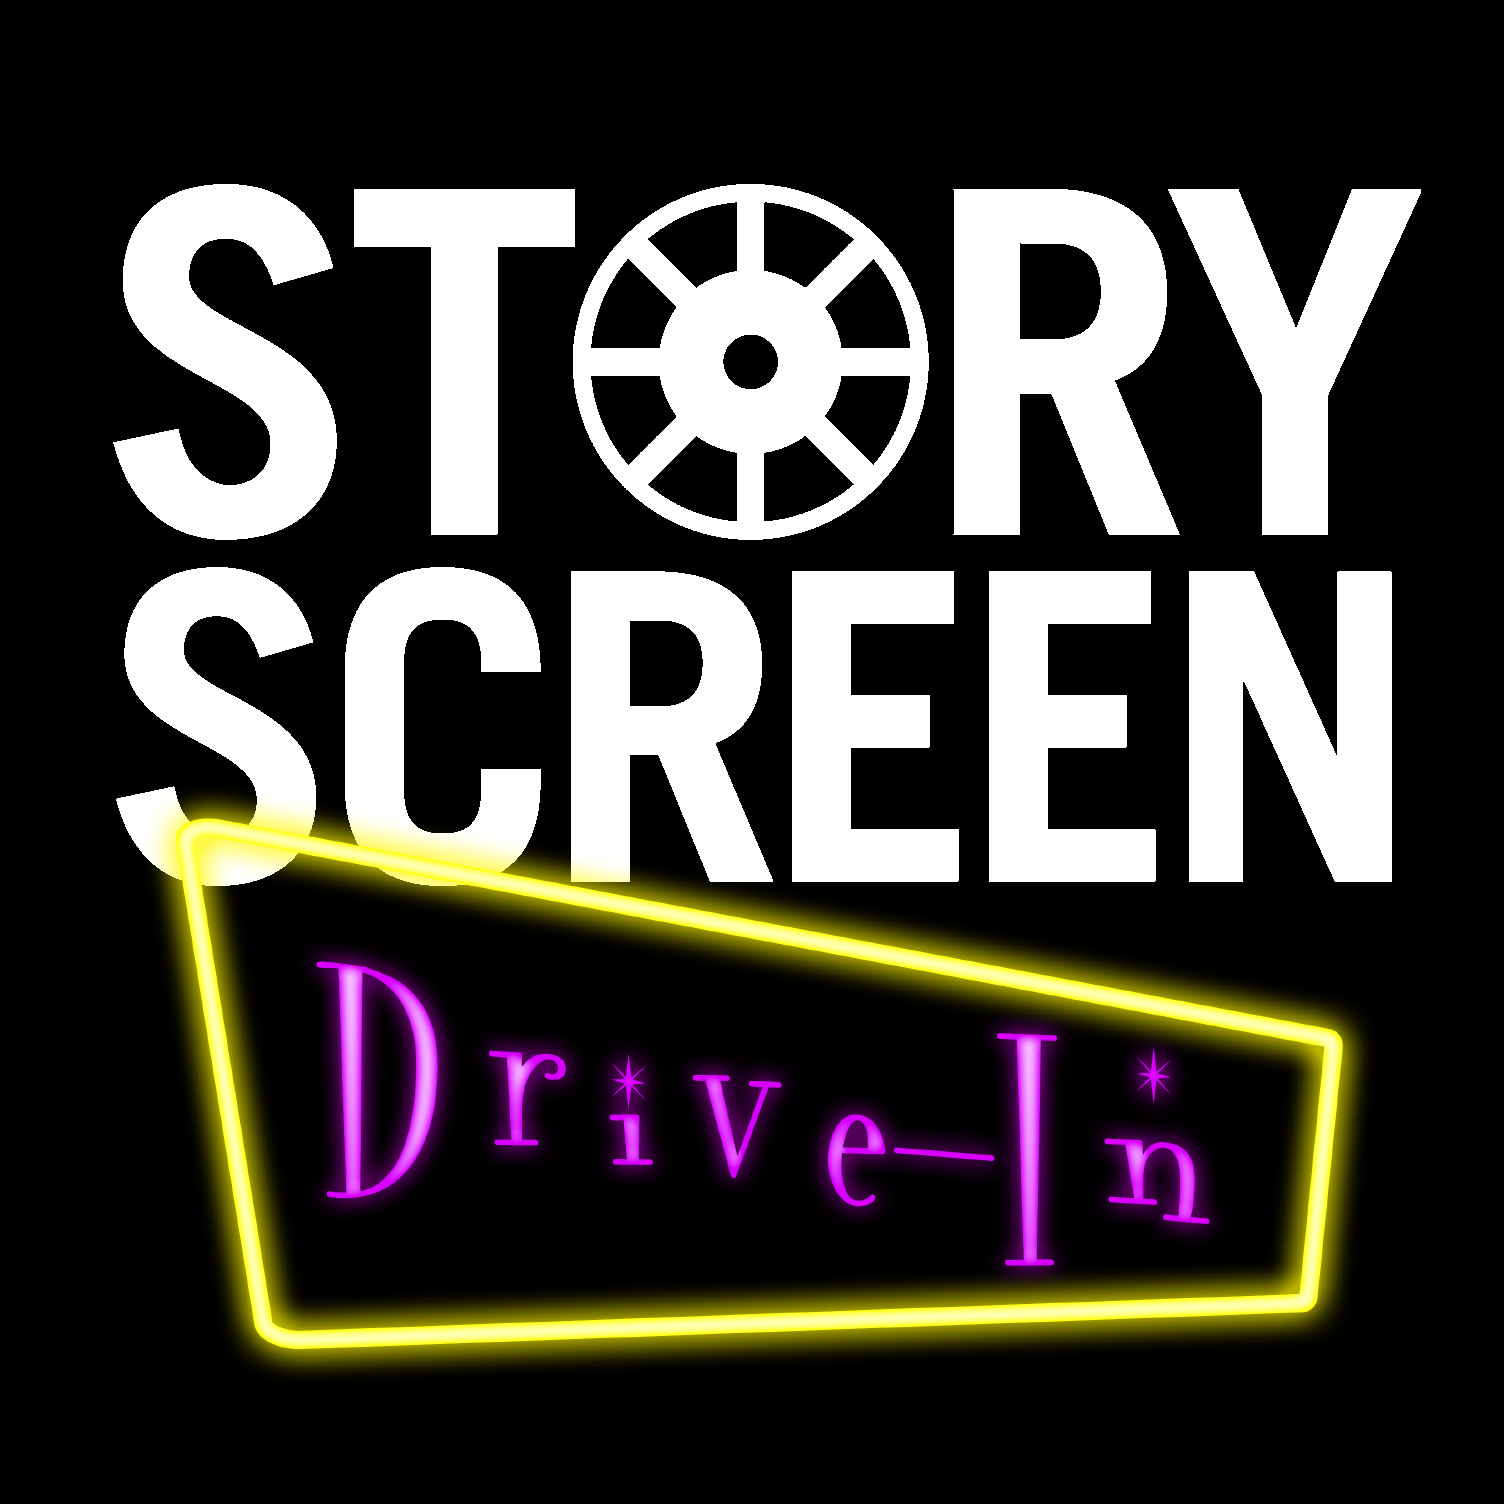 Drive-in Movies! with Story Screen Beacon and The City of Beacon, NY at Story Screen Drive-in